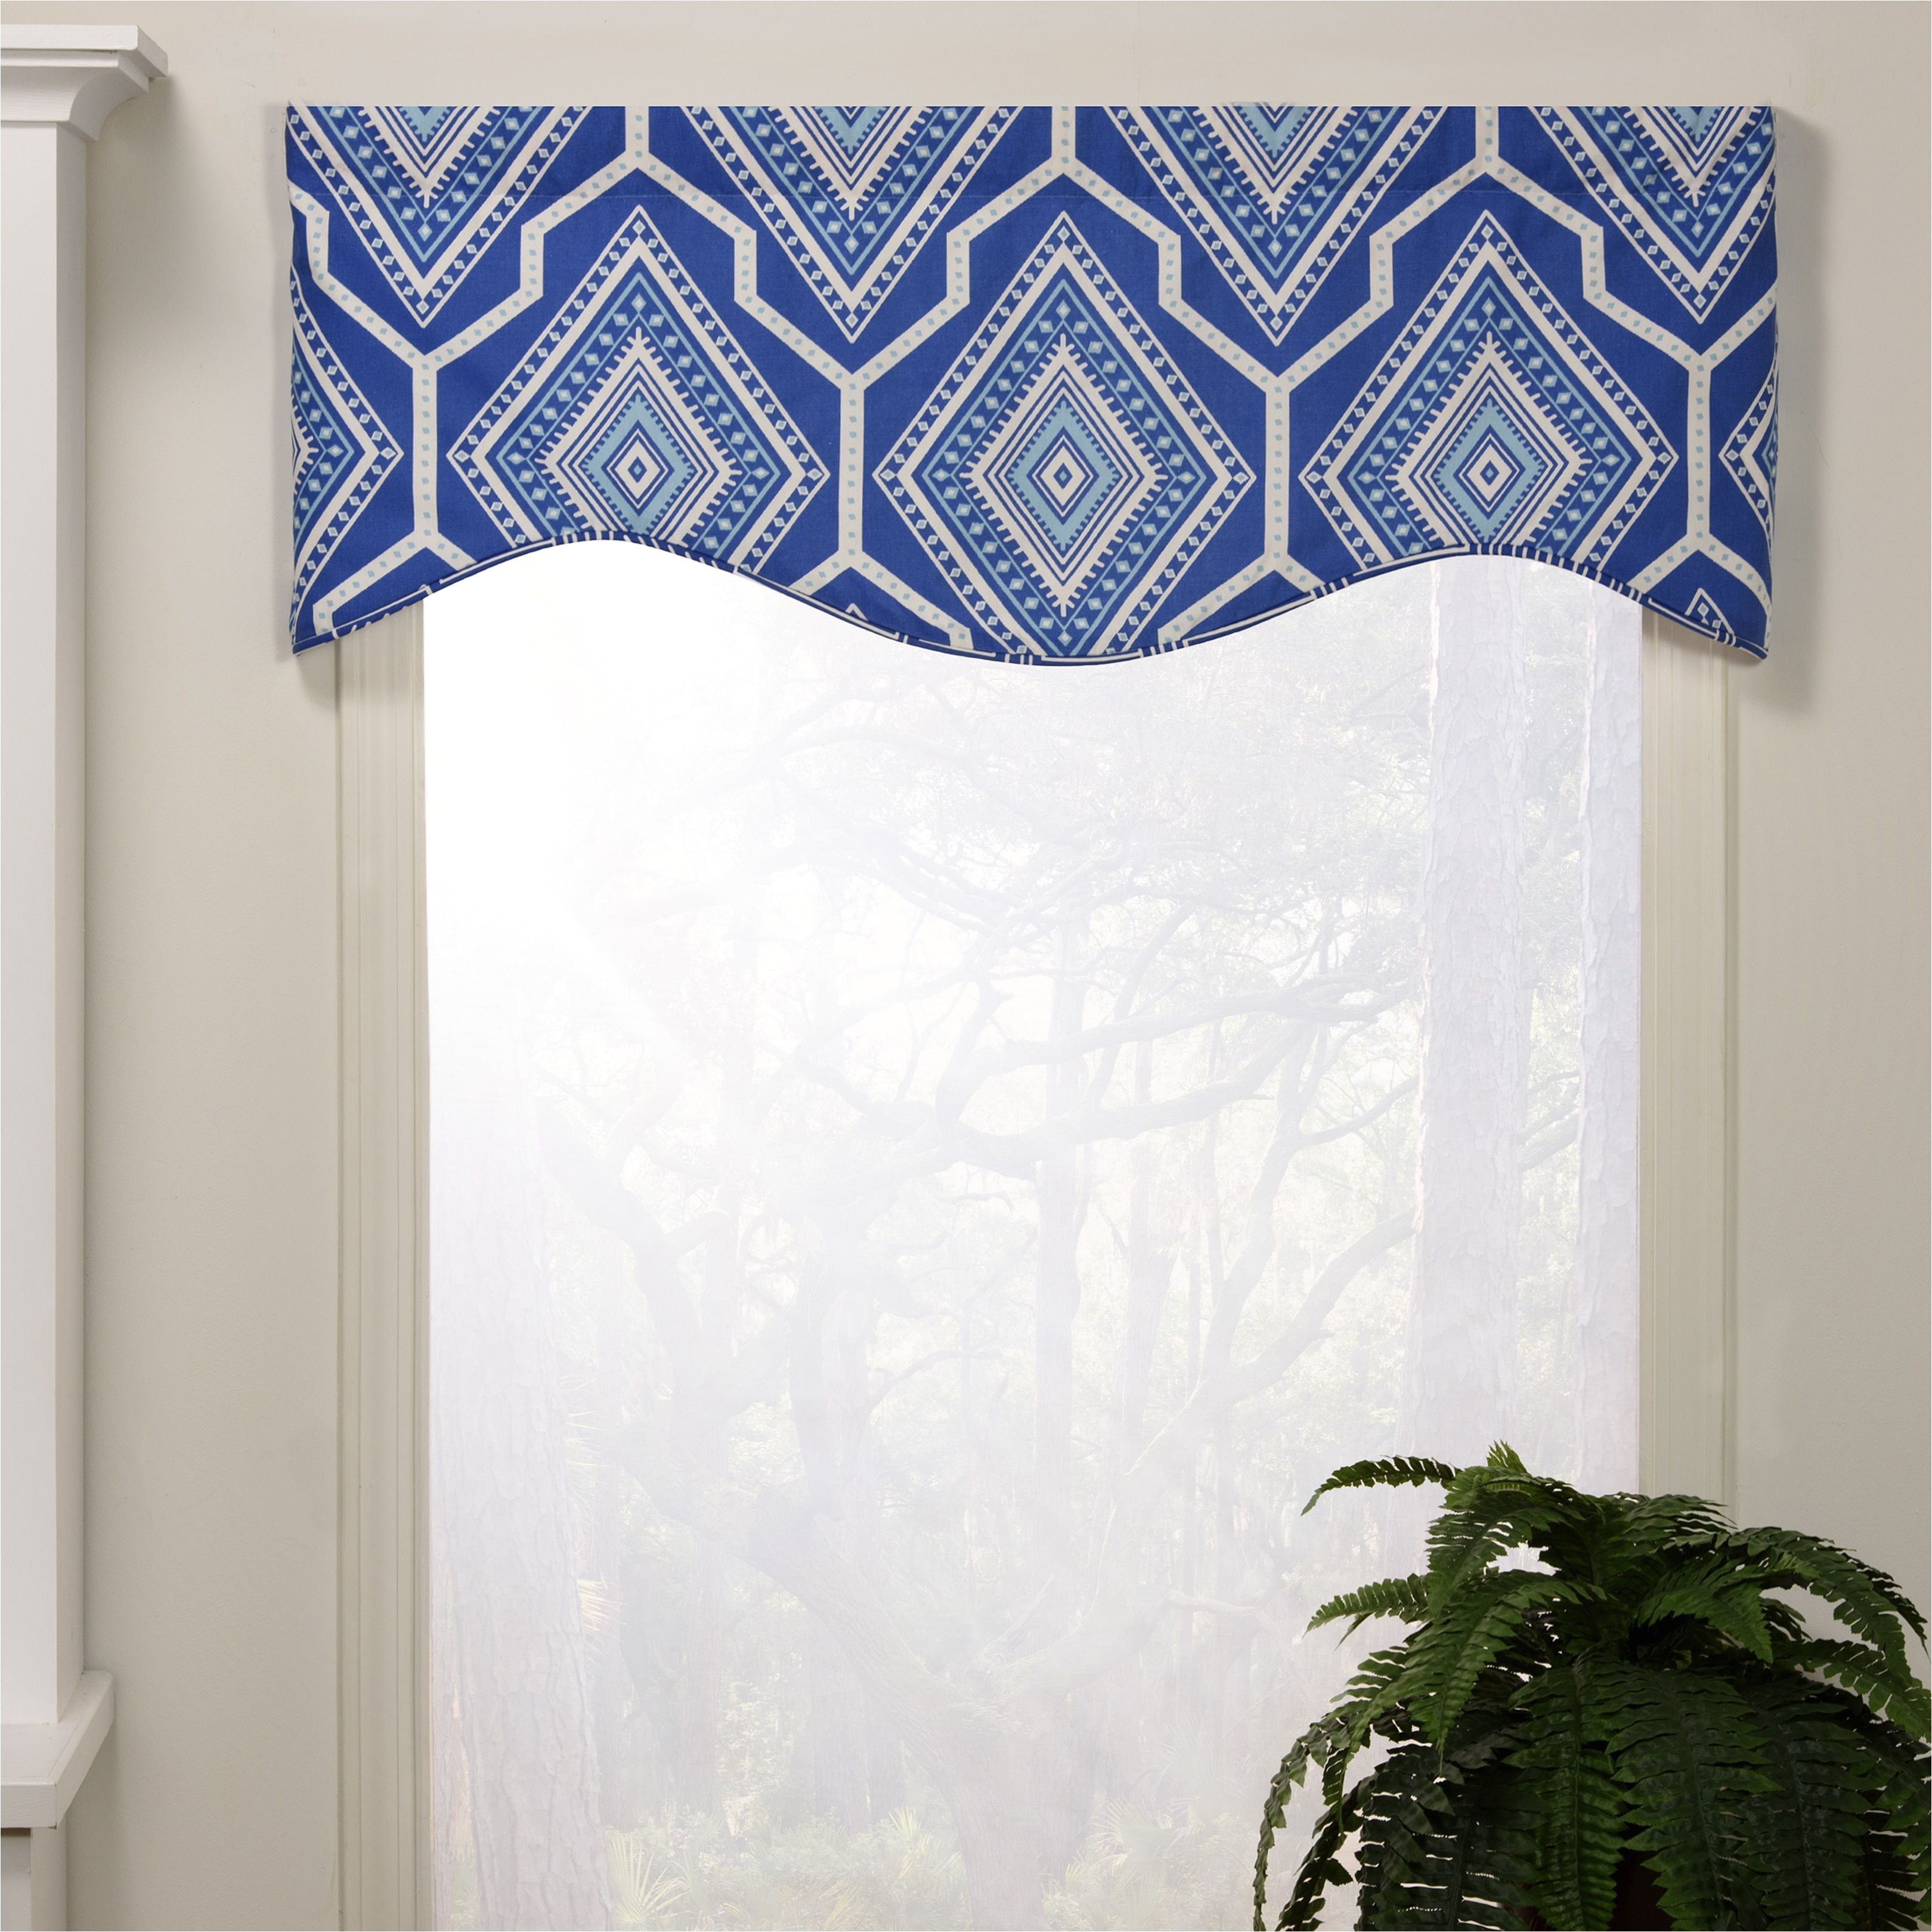 victor bryson shaped valance blue 100 cotton geometric